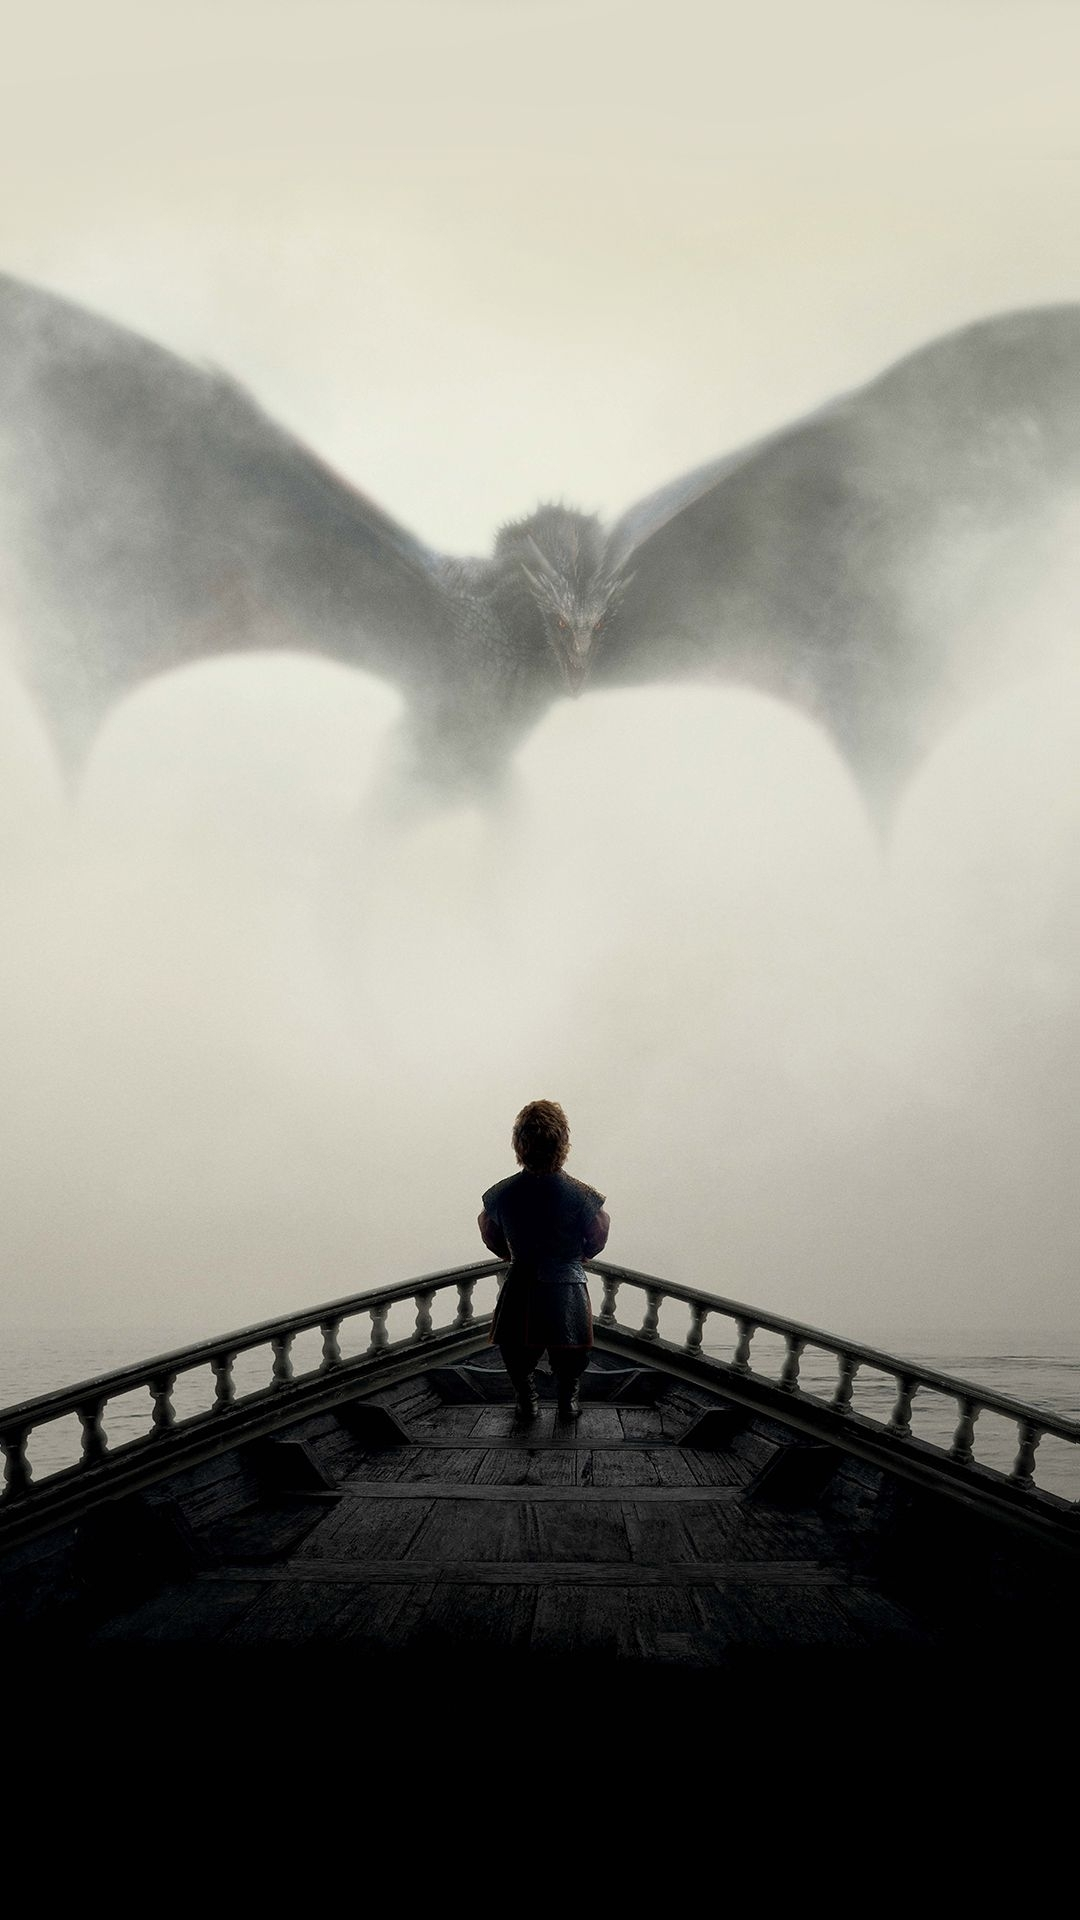 resultado de imagen de phone wallpapers hd | game of thrones